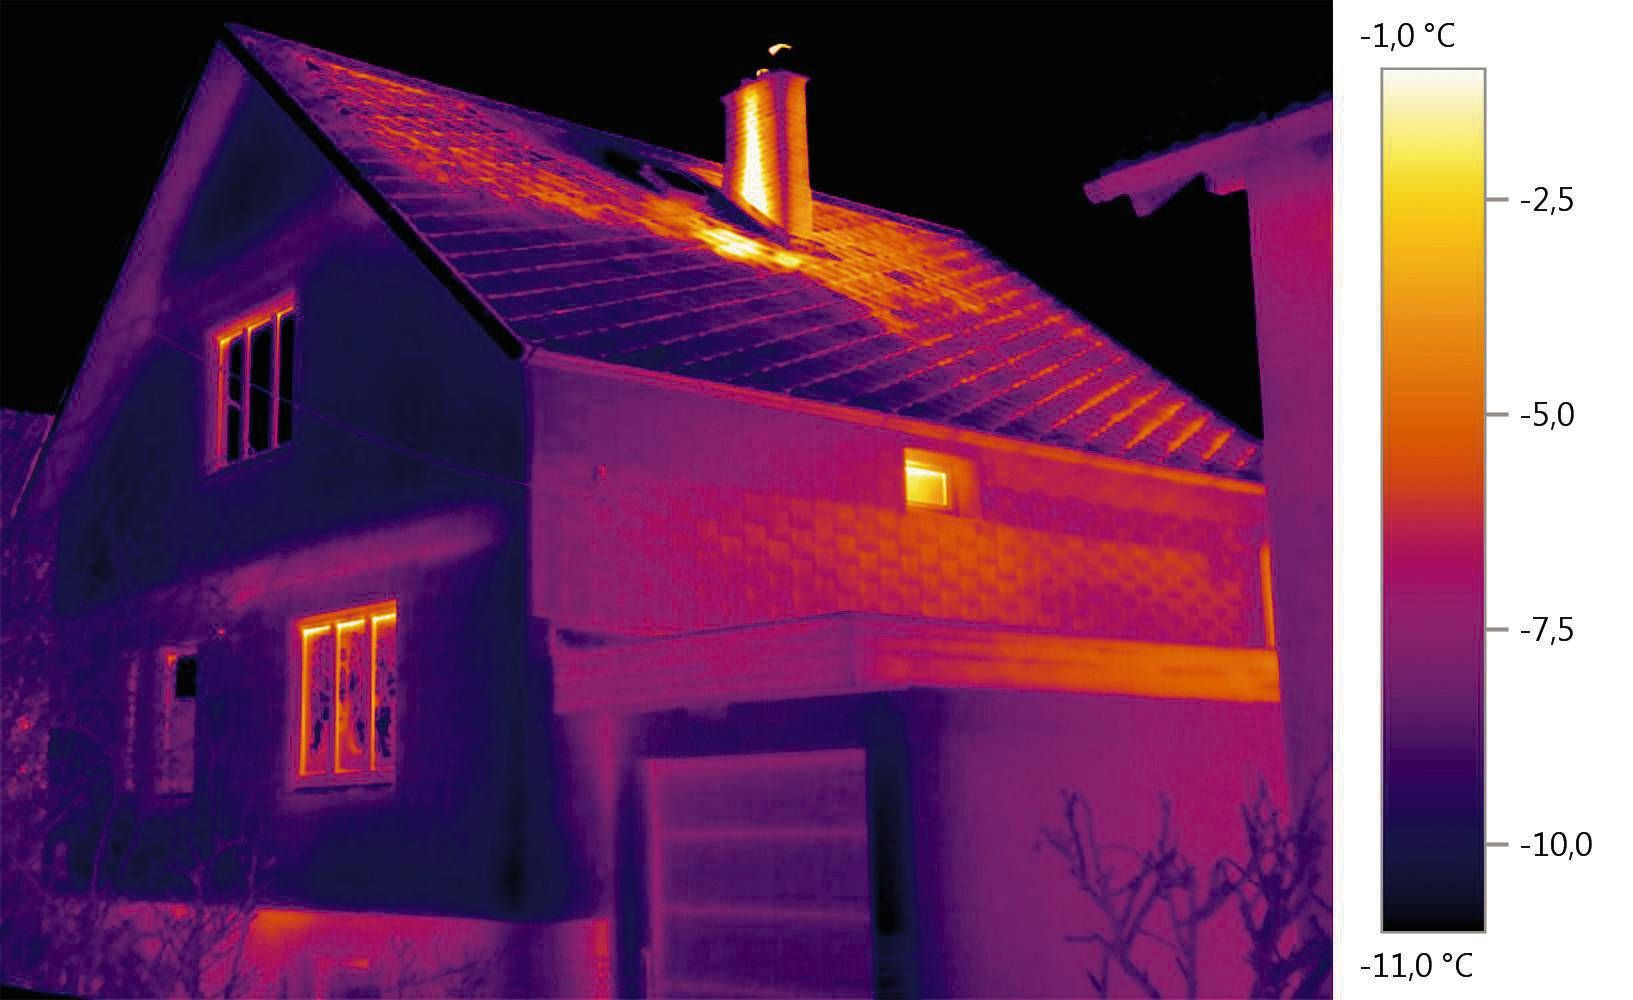 IR-Image-construction_02.jpg